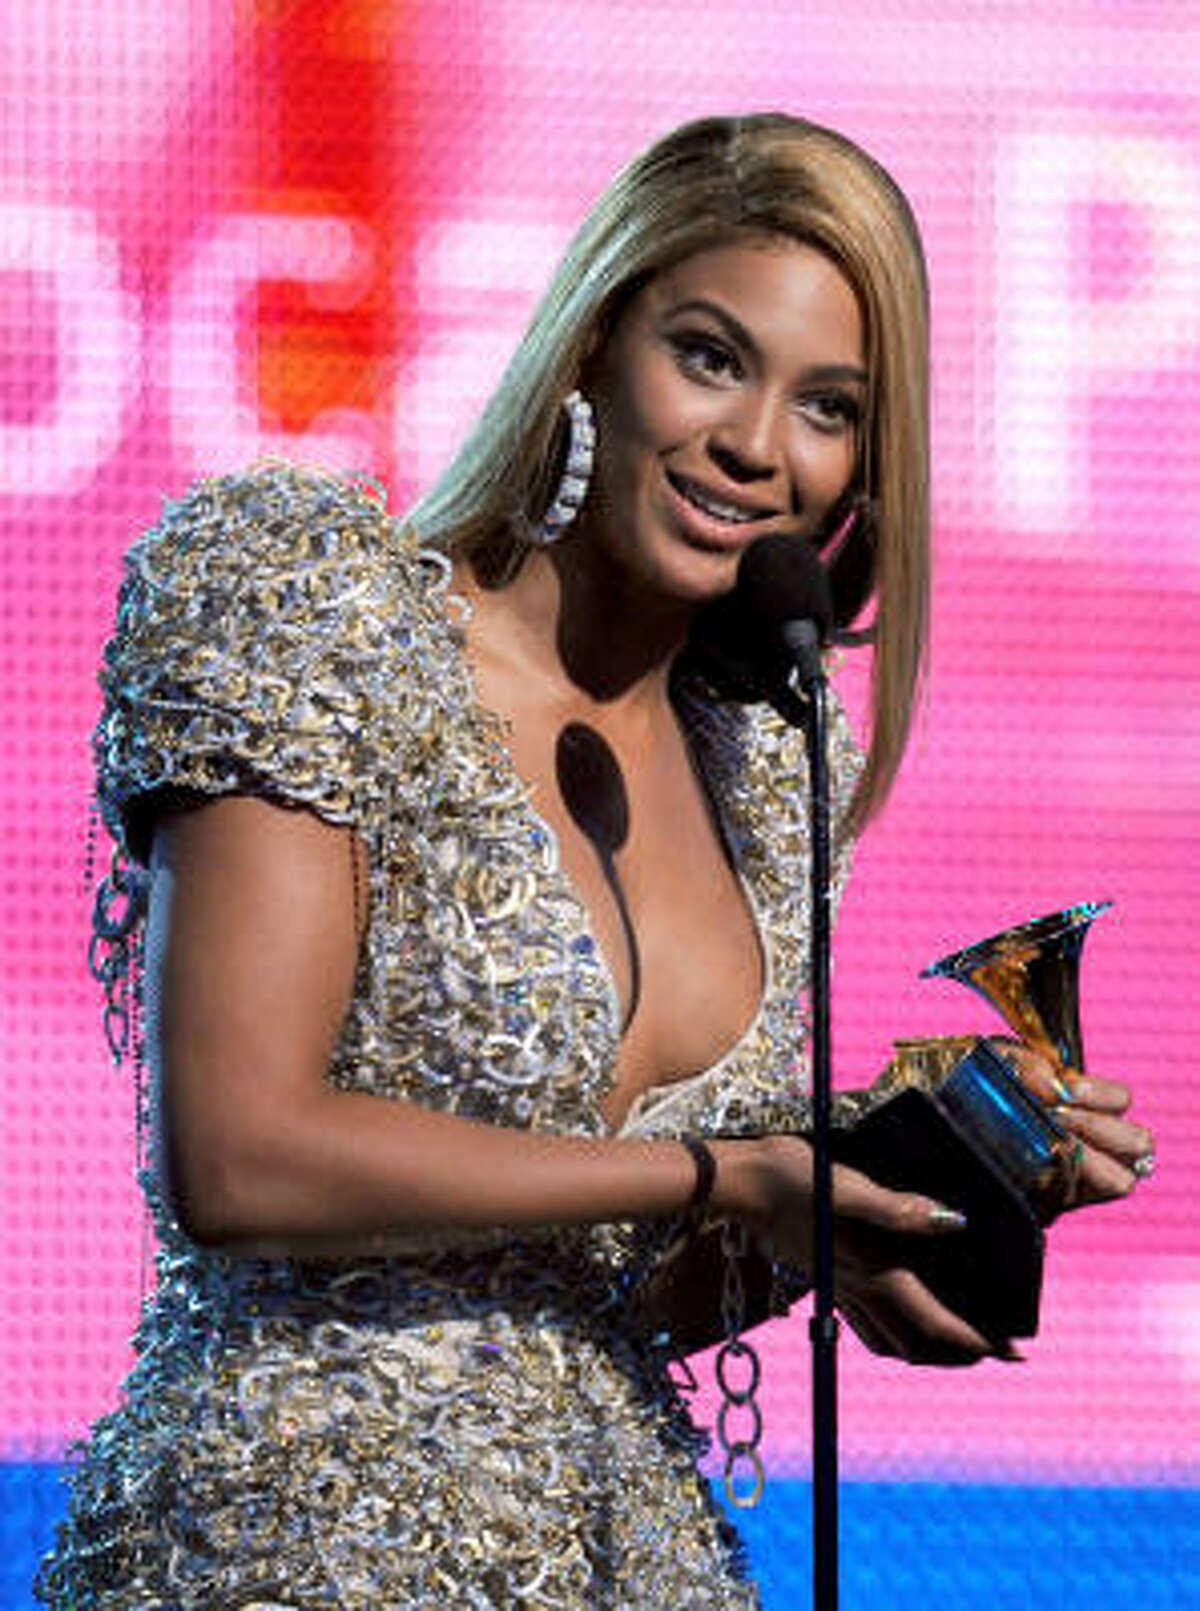 Beyonce Knowles accepts the Best Female Pop Vocal Performance award onstage during the Grammy awards show.